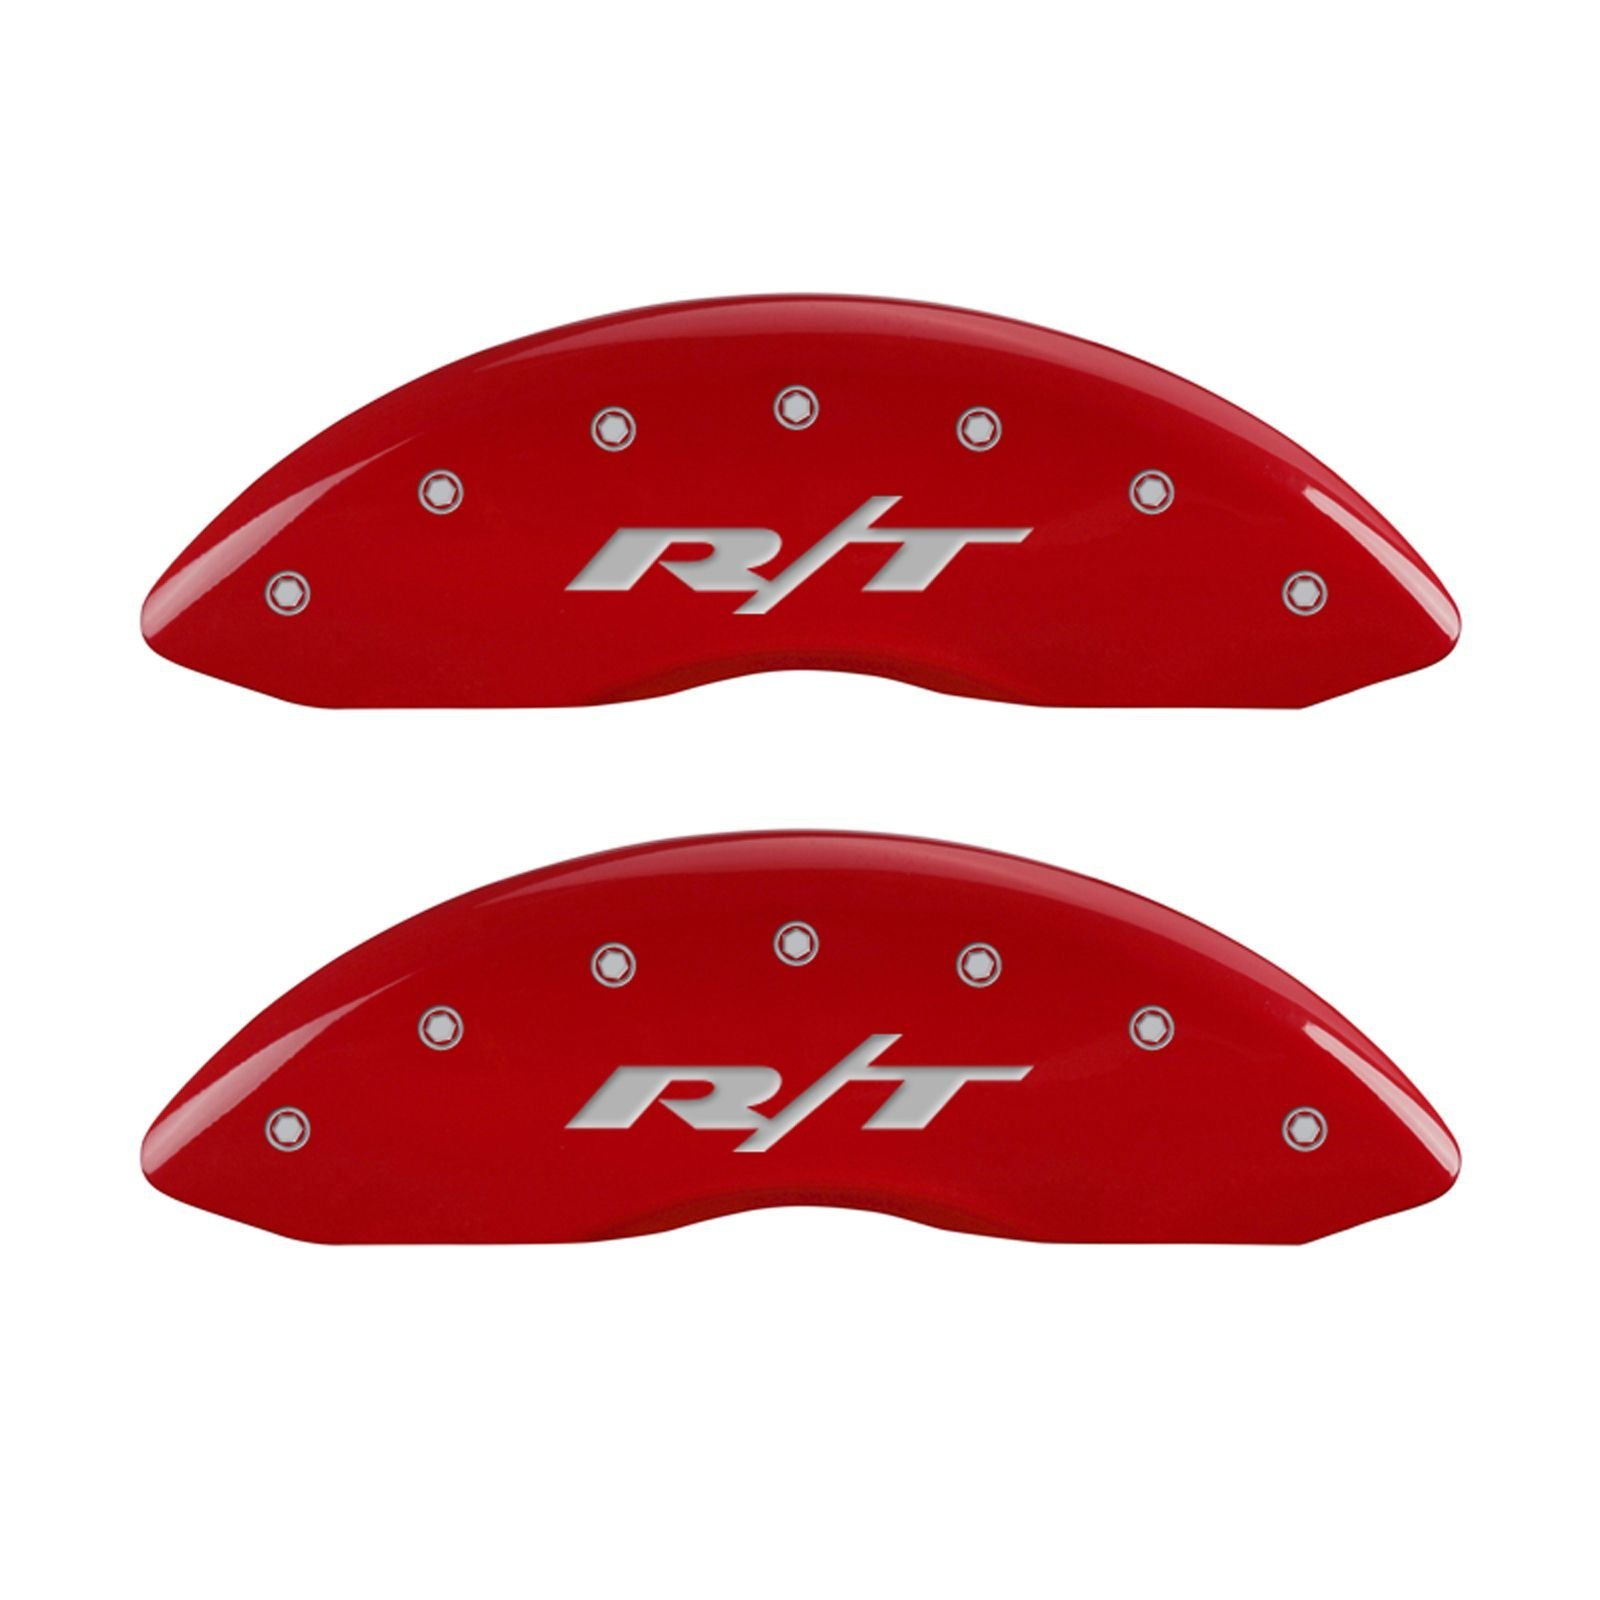 MGP Caliper Covers 12162SRT1RD Red Powder Coat Finish Engraved Front/Rear RT Caliper Cover, (Set of 4) by MGP Caliper Covers